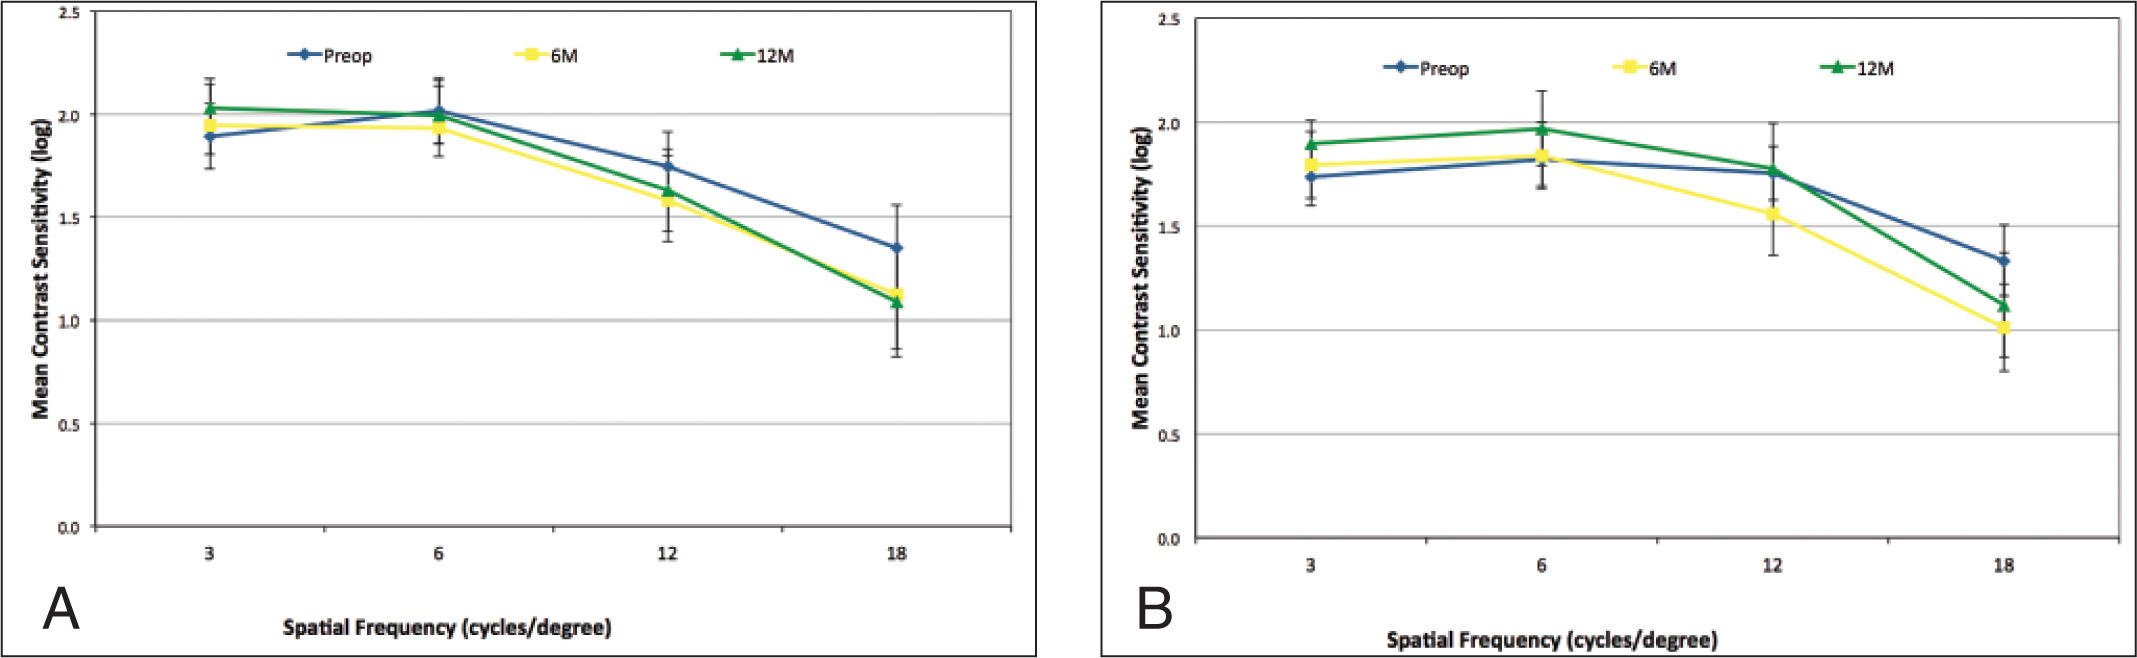 Mean (A) photopic and (B) mesopic contrast sensitivity in the implanted eye. Error bars indicate one standard deviation.